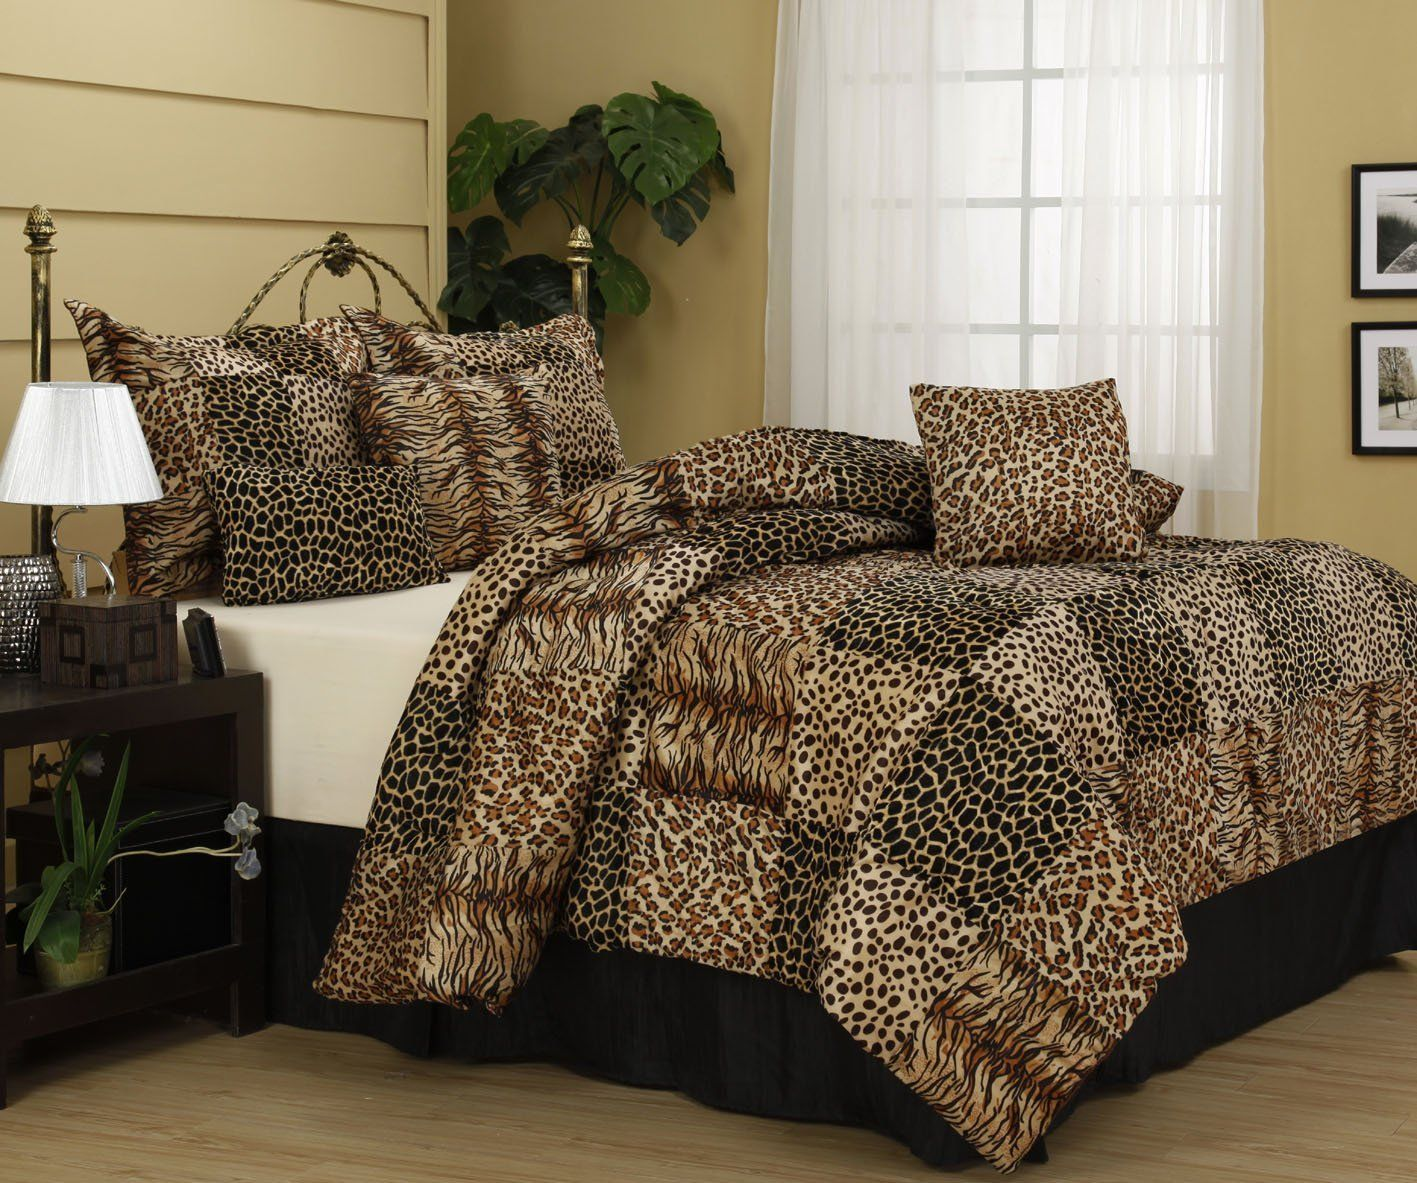 Cheetah And Leopard Print Nanshing Cameroon Plush Comforter Set Red Animal Prints Rocks My